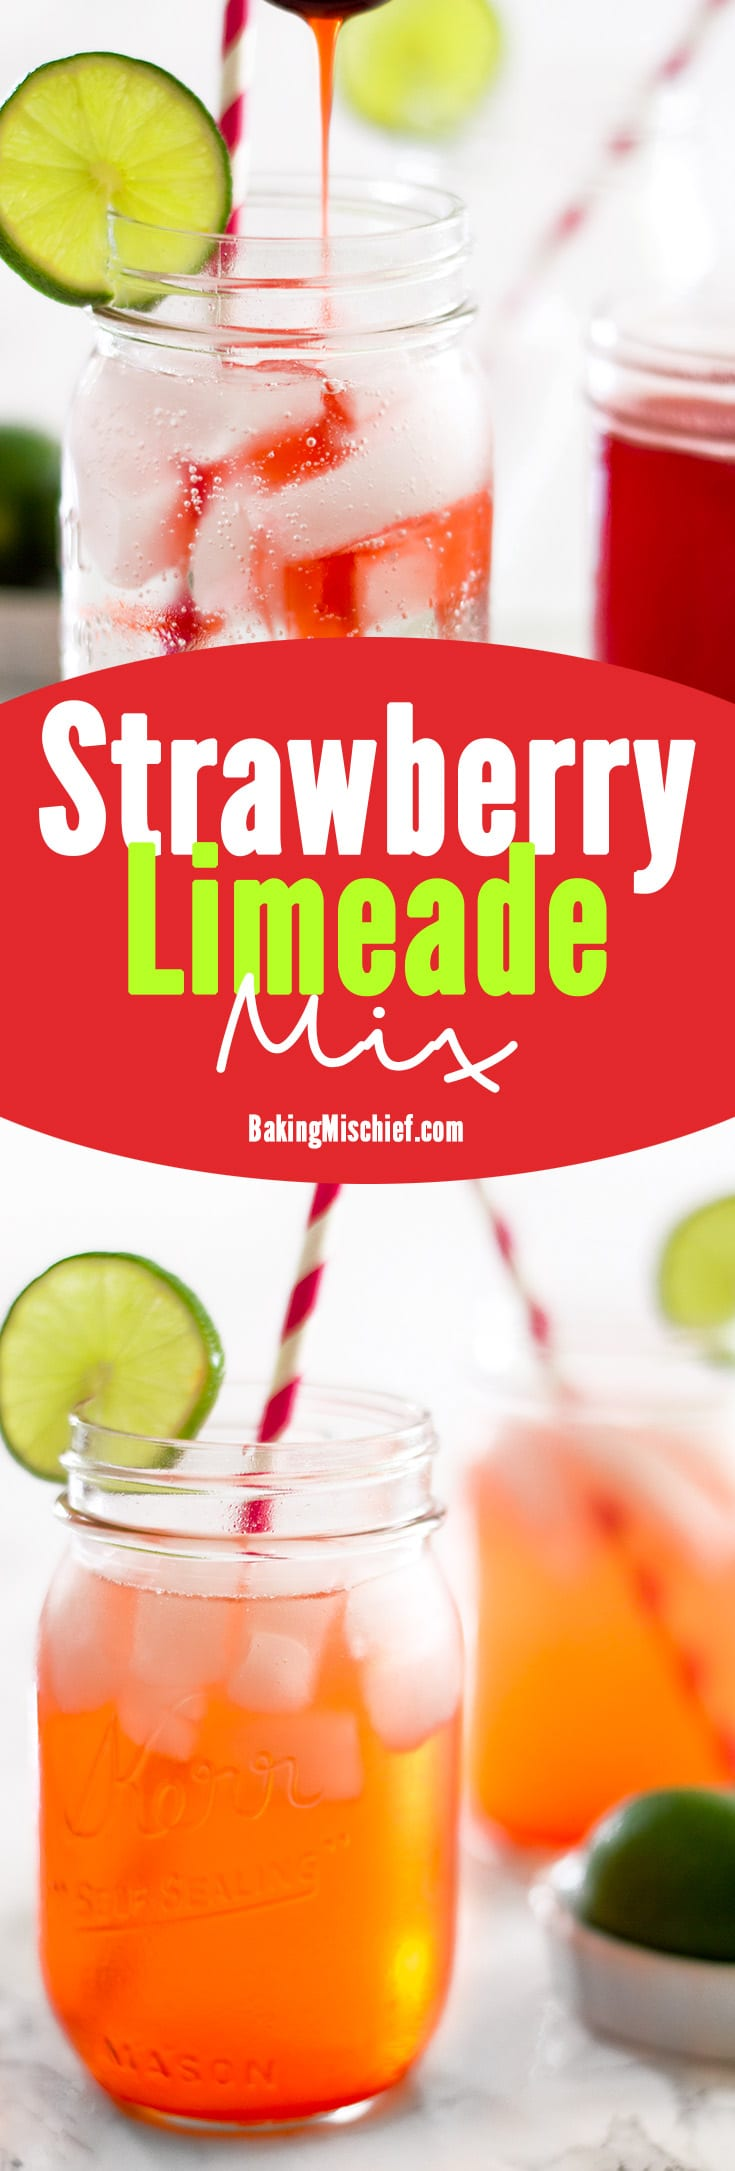 Strawberry Limeade is the perfect summer drink for BBQ's or a mid-afternoon treat. Keep this mix in the fridge and enjoy your limeades on demand all summer long. Recipe includes nutritional information. From BakingMischief.com